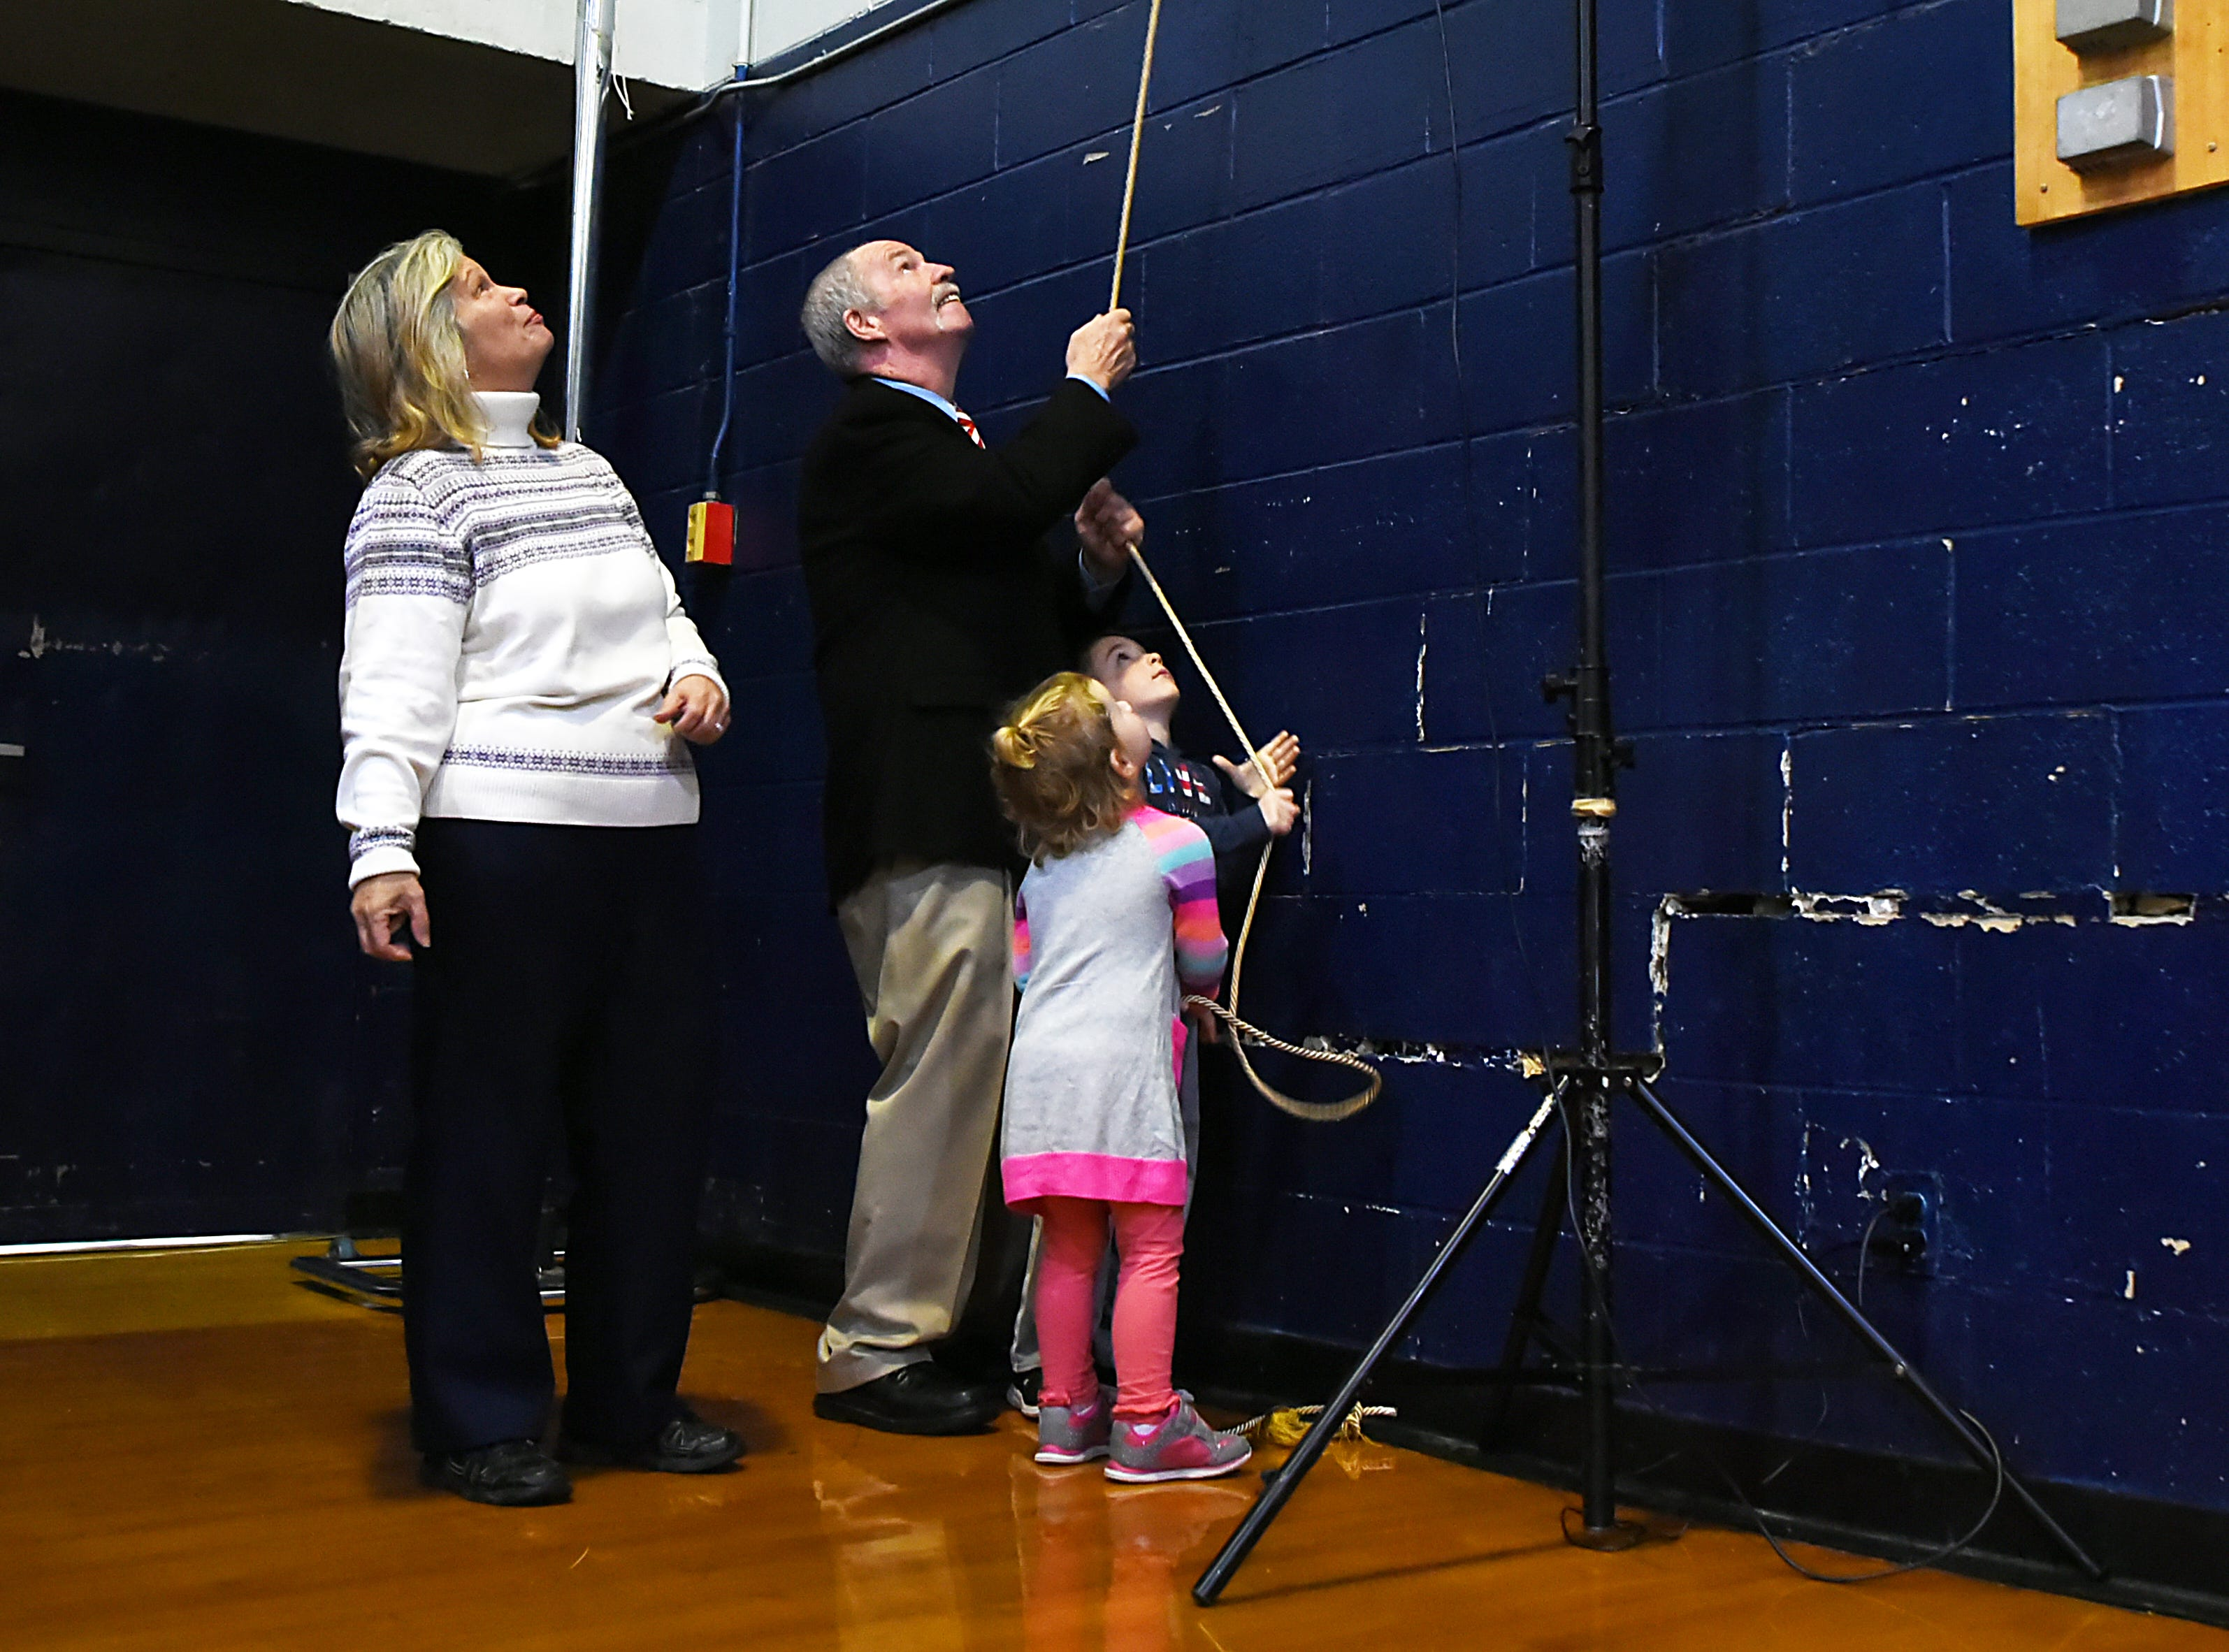 Palisades Park High School holds a ceremony to name the gym after John Wroblewski, long time athletic director on Friday December 14, 2018. John Wroblewski and his grandchildren unveil the sign in the gym as his wife Shawn Wroblewski looks on.